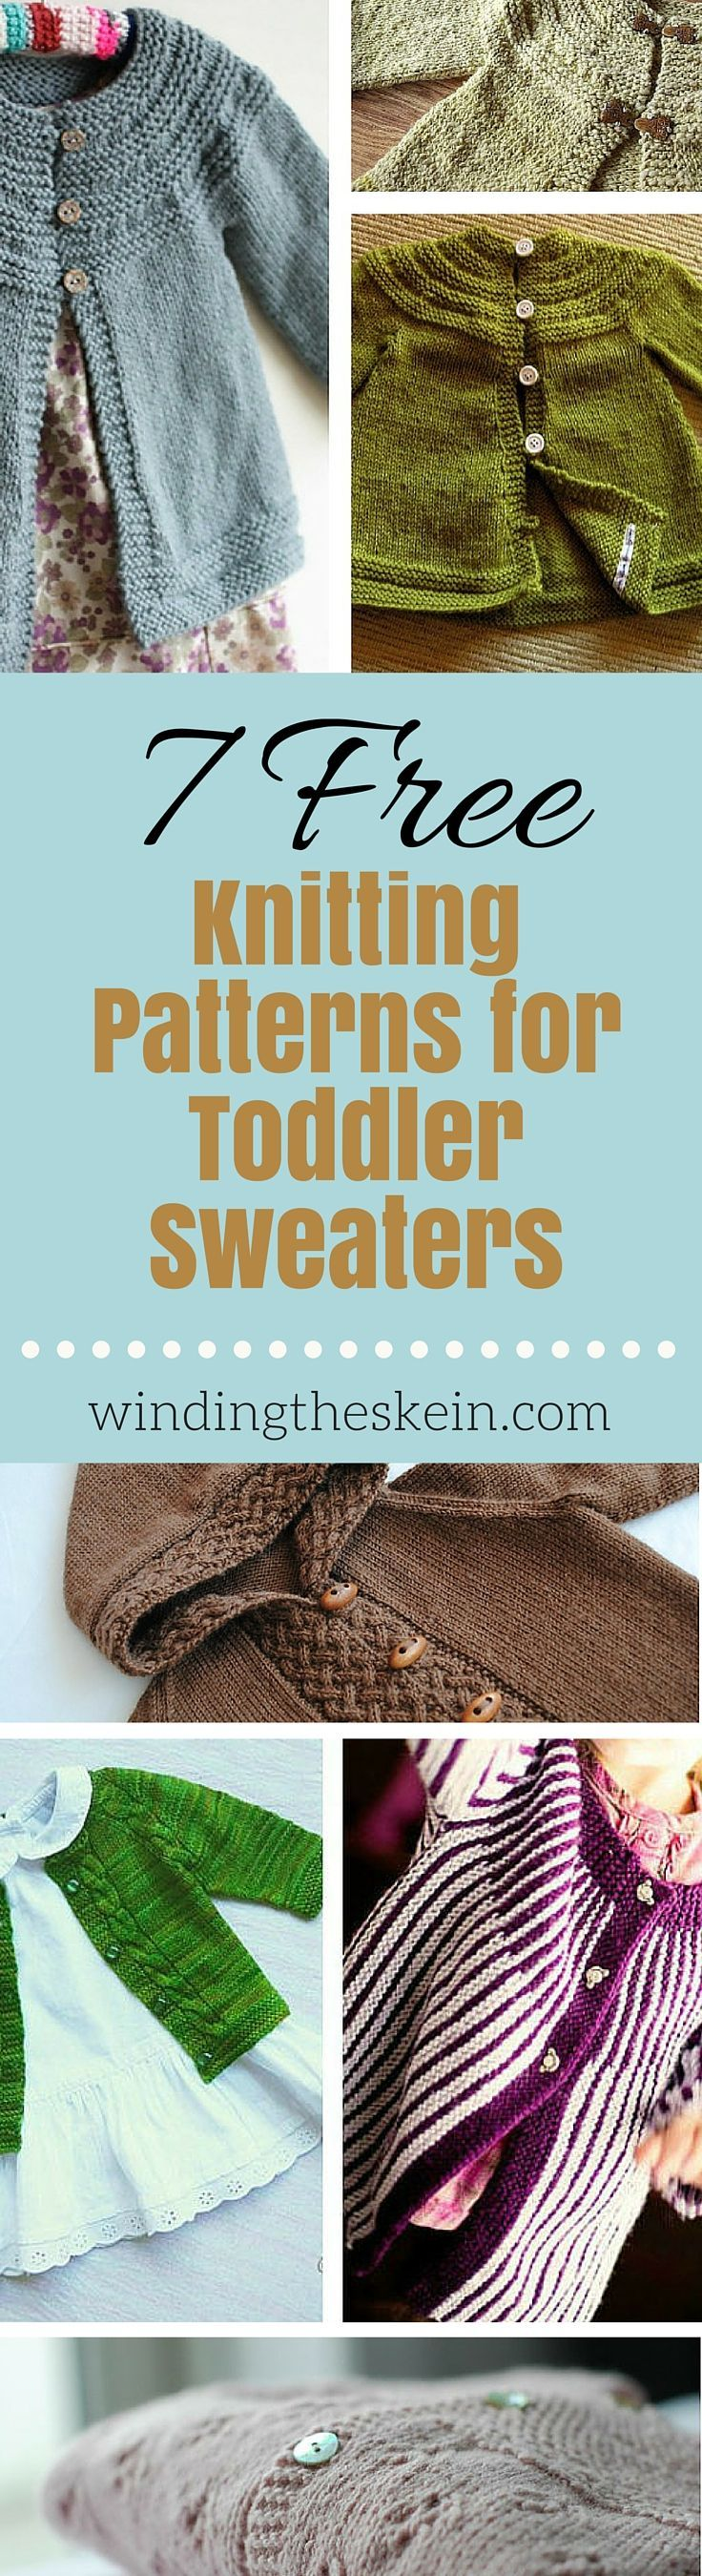 7 free knit toddler patterns knitting and crocheting pinterest 7 free knit toddler patterns bankloansurffo Choice Image